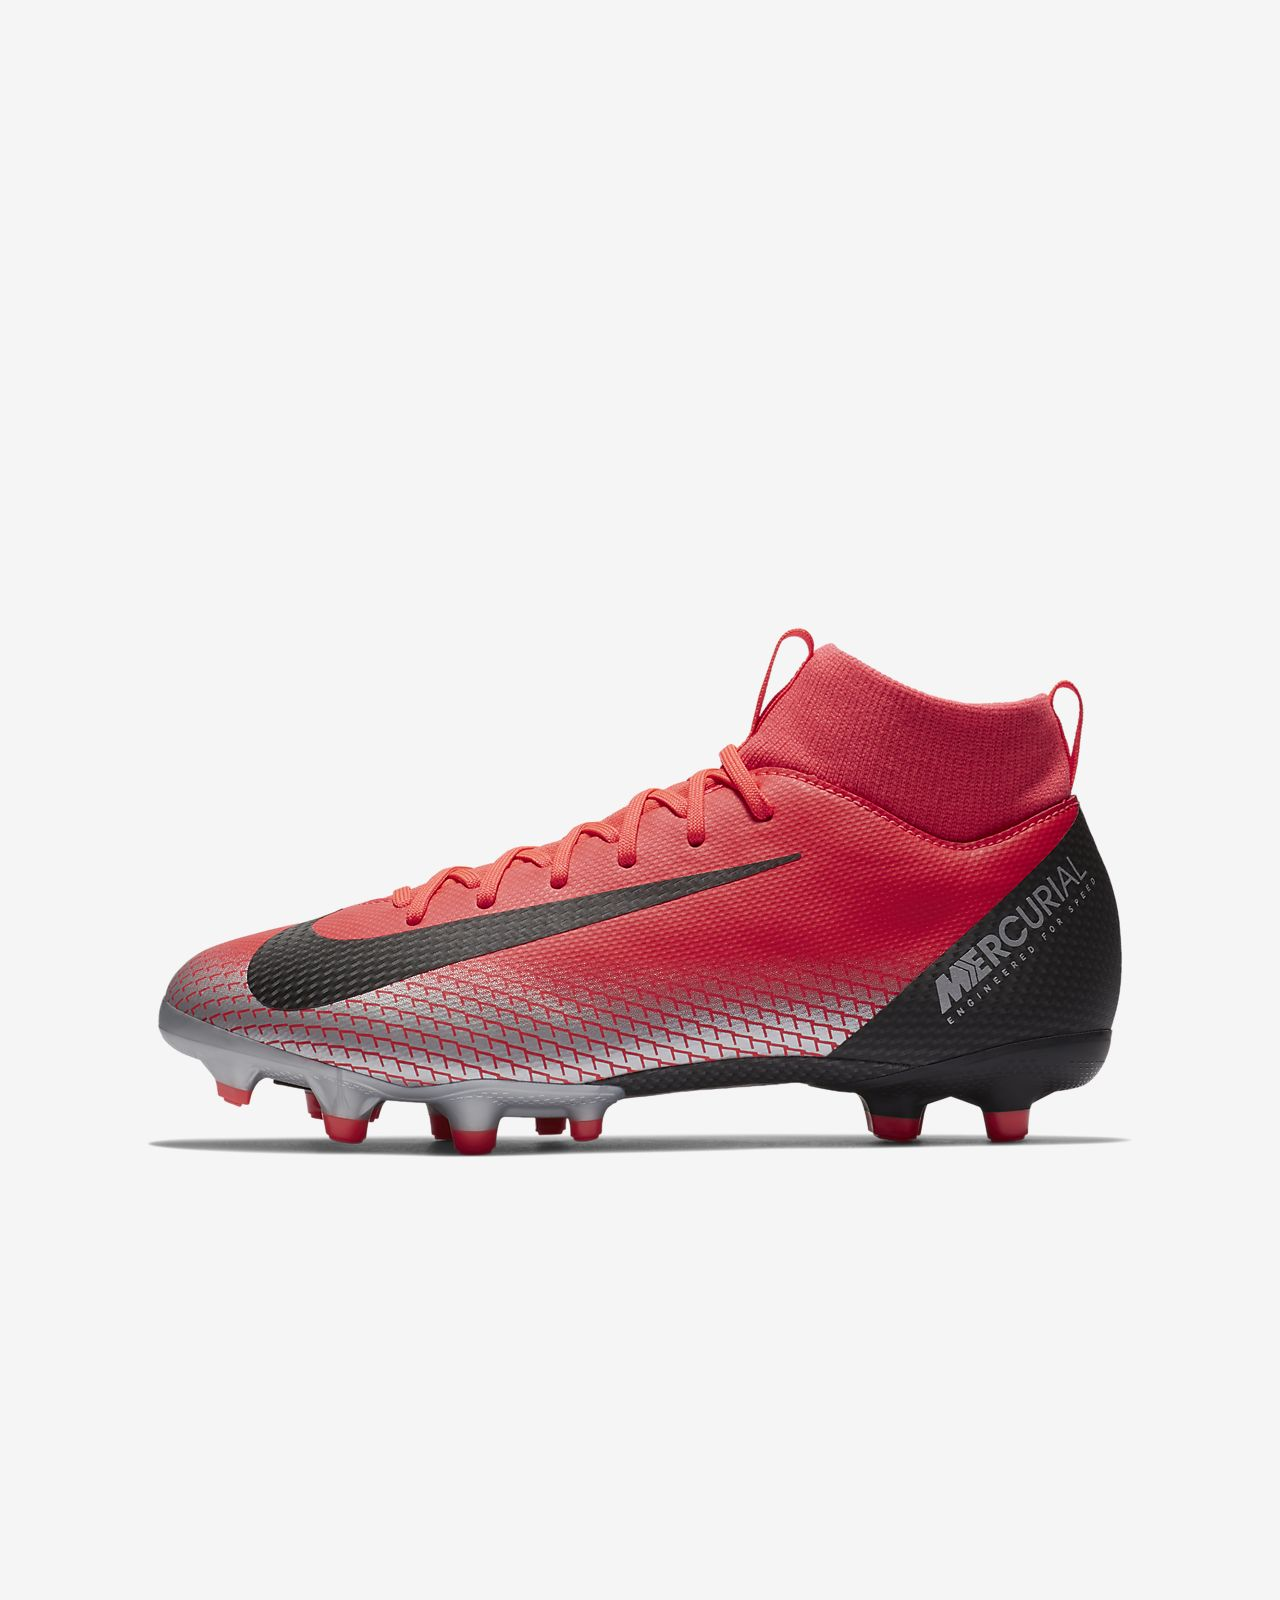 Nike Jr. Superfly 6 Academy LVL UP MG Younger/Older Kids' Multi-Ground Football Boot